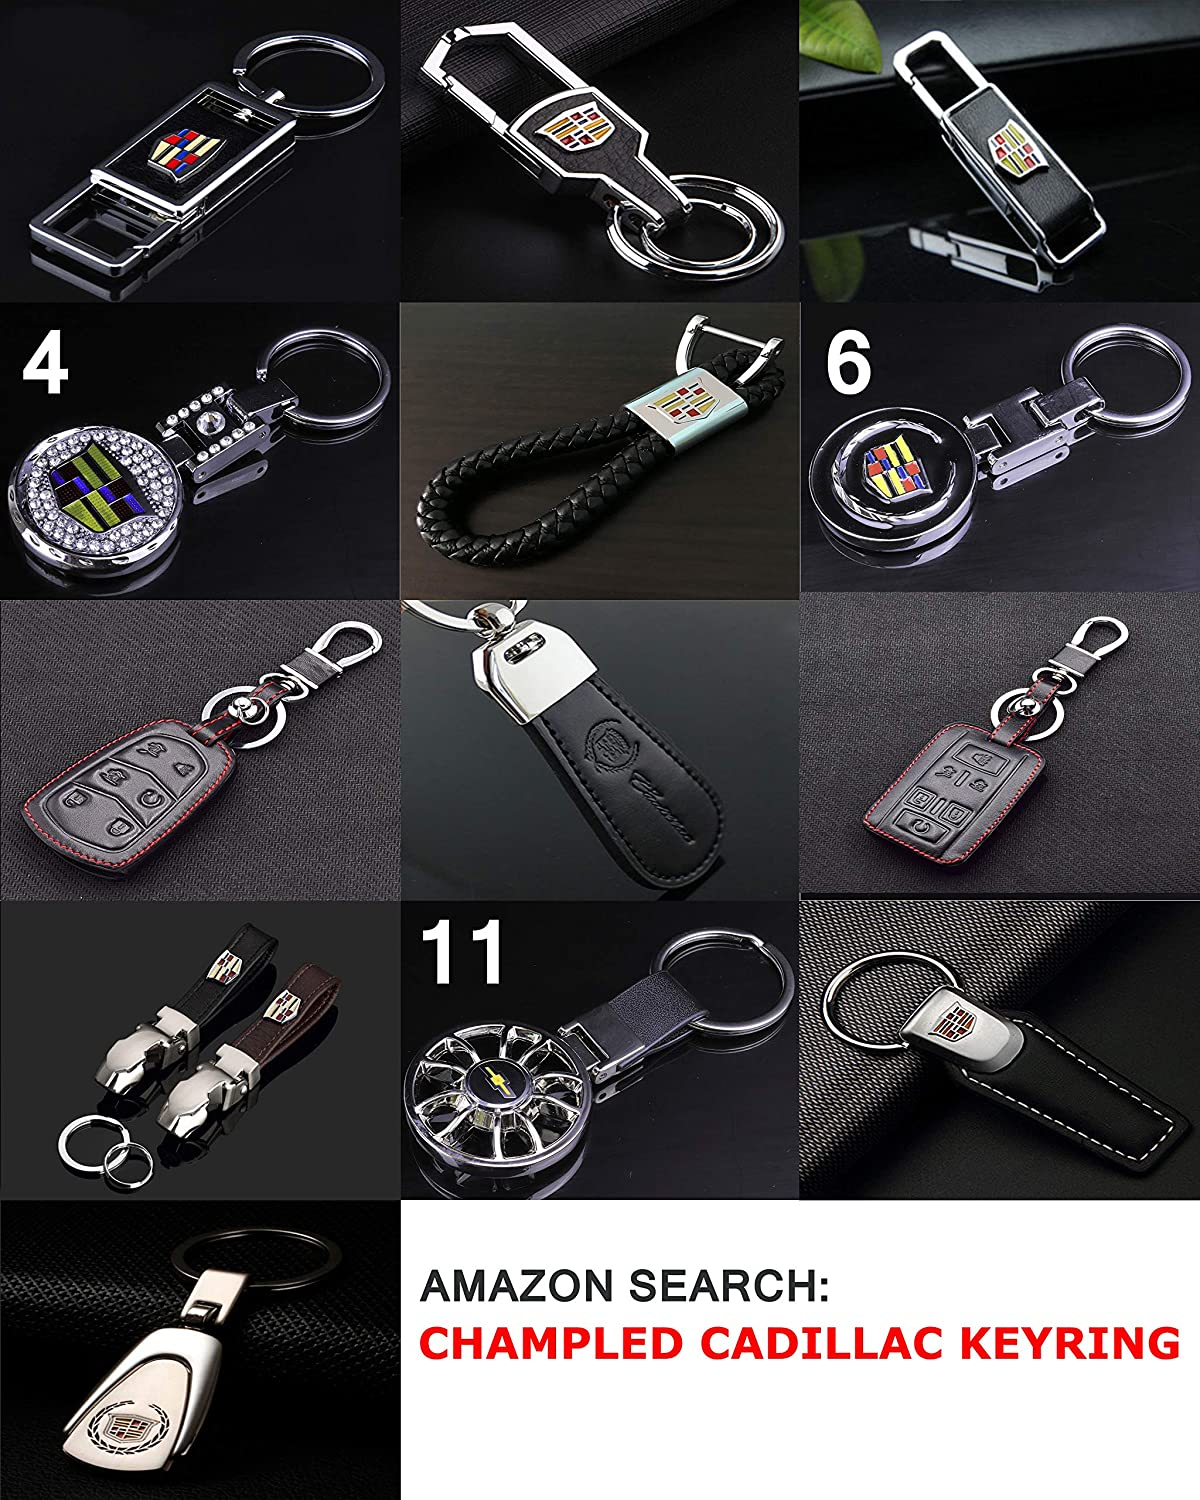 CHAMPLED CADILLAC Emblem Keychain Keyring Logo symbol sign badge personalized custom logotipo Quality Metal Alloy Nice Gift for Man Woman Chapled 4350397525